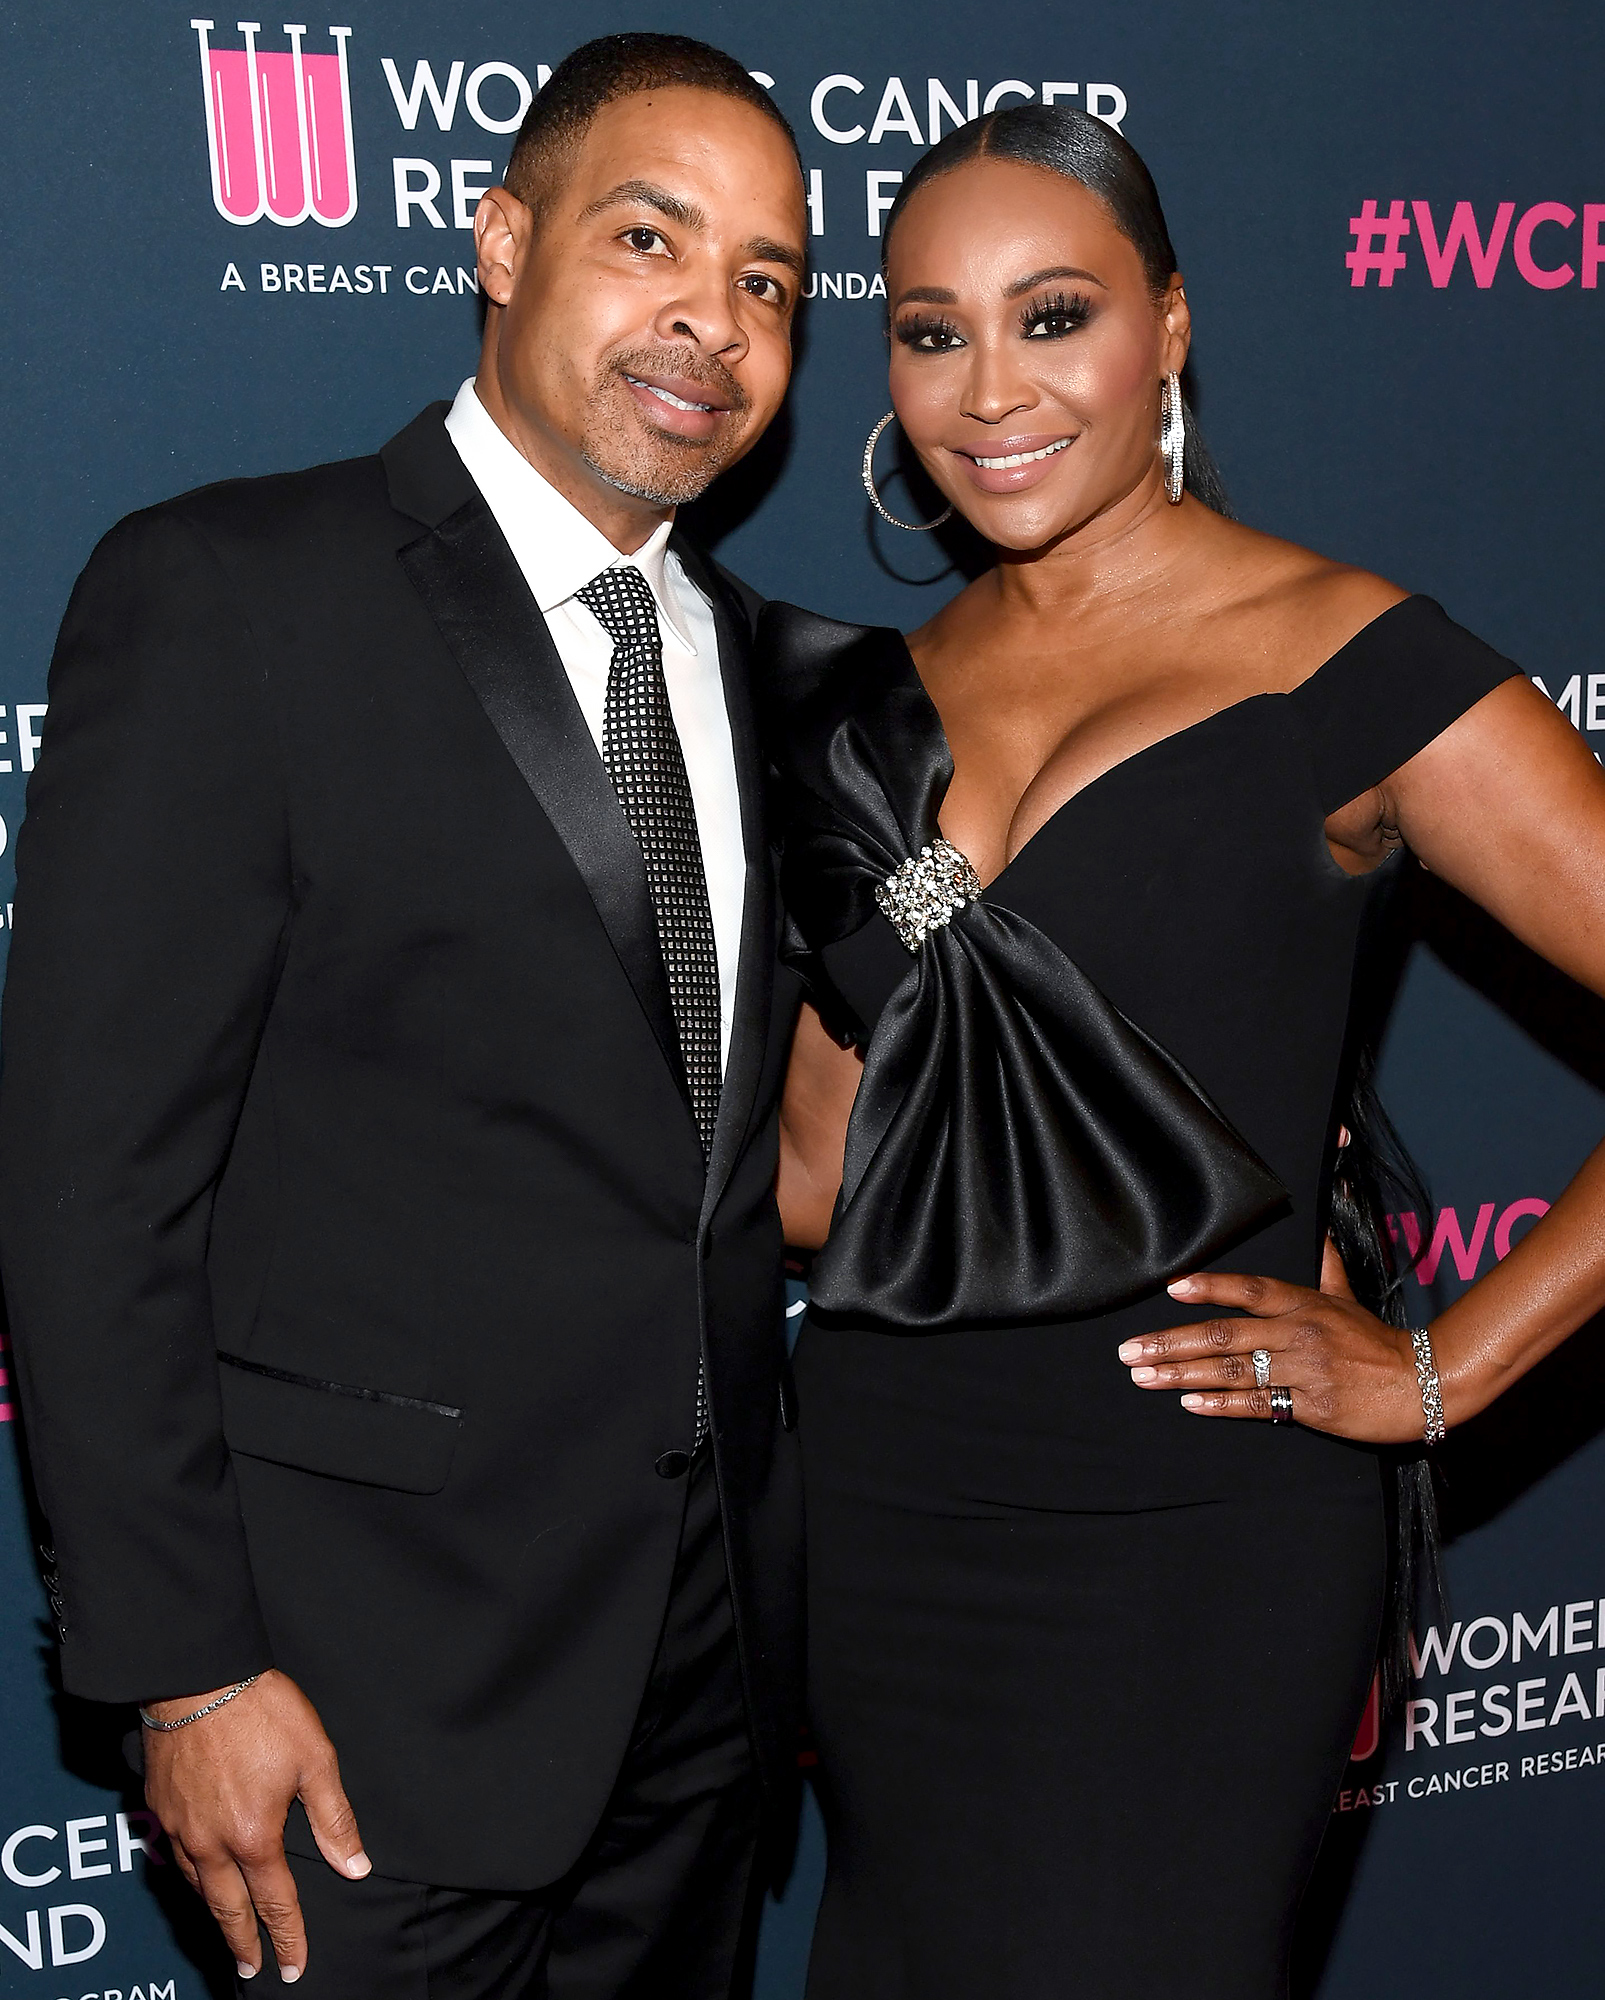 Cynthia Bailey Quarantine Has Tested My Relationship With Mike Hill